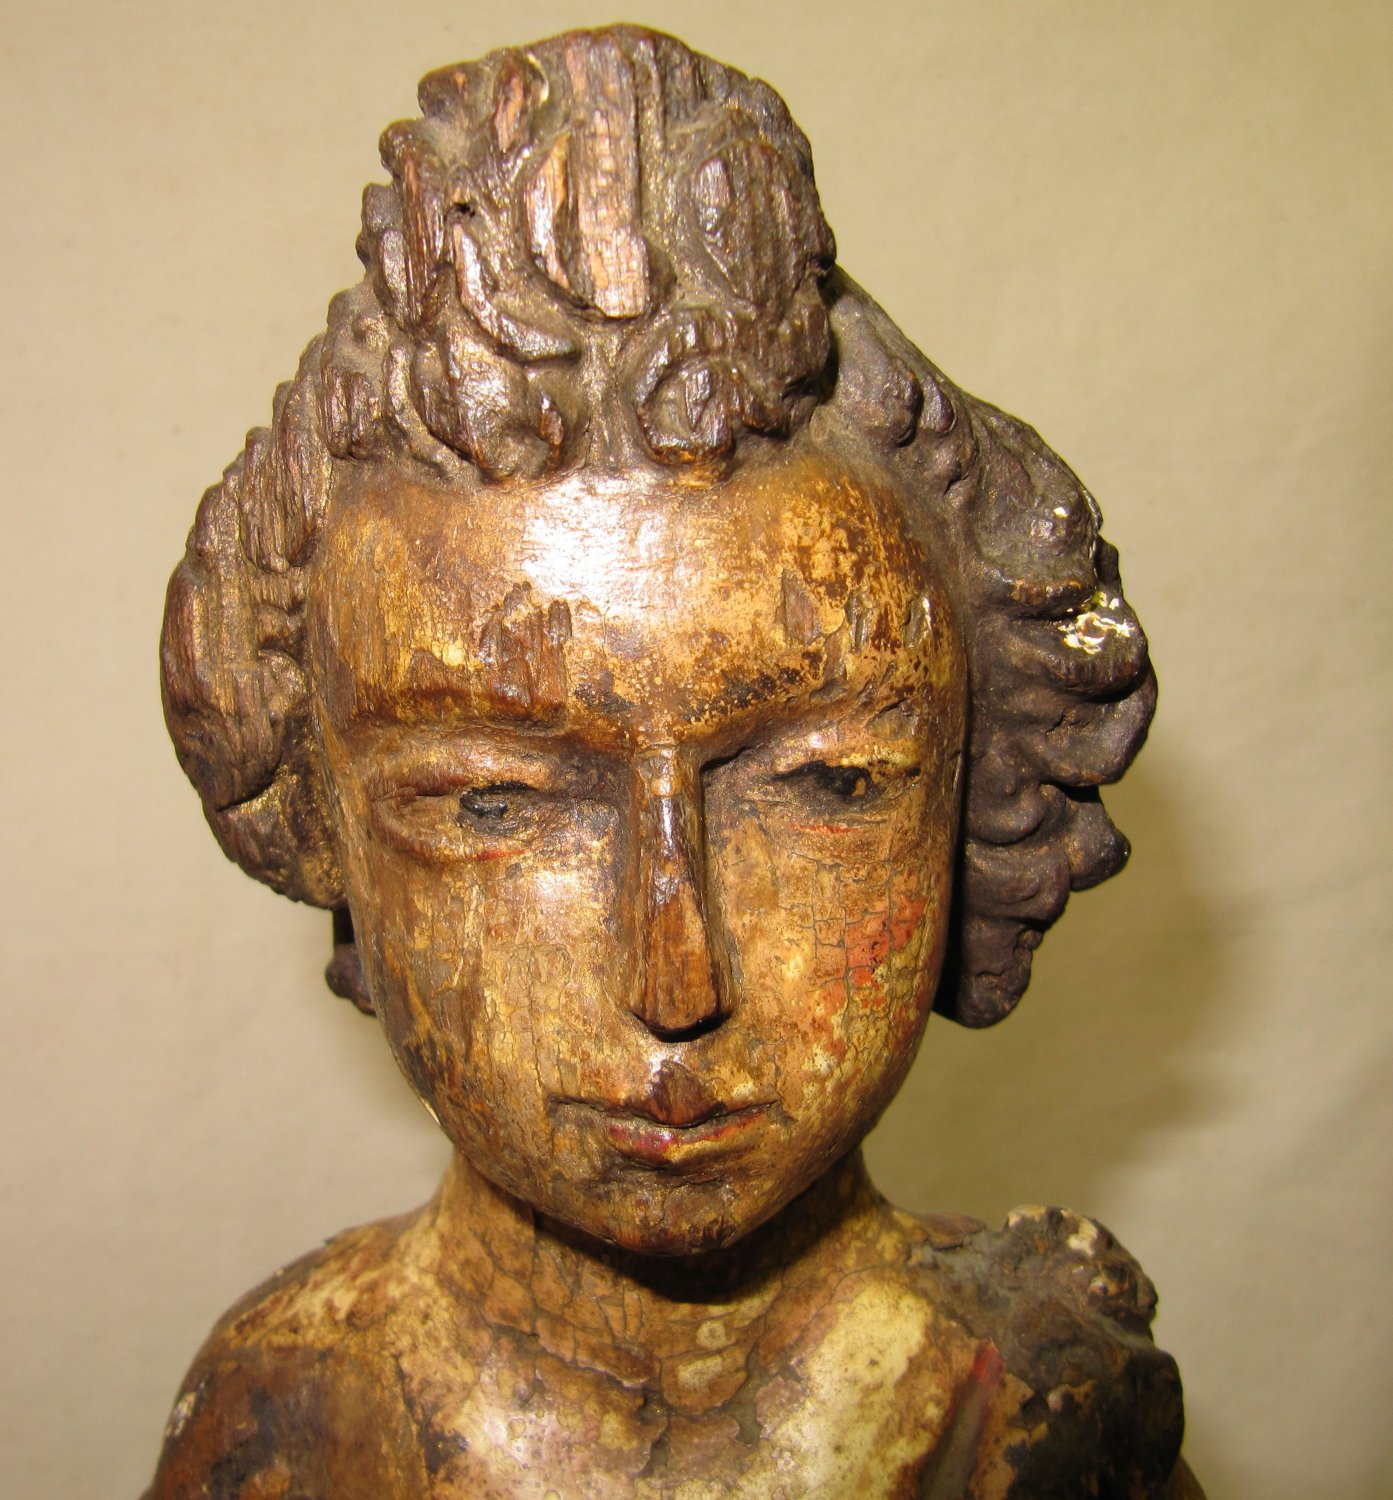 Peruvian Antiquity Religious Wood Carving Shepherd Boy Figure on Wood Base 20 Inch S. American